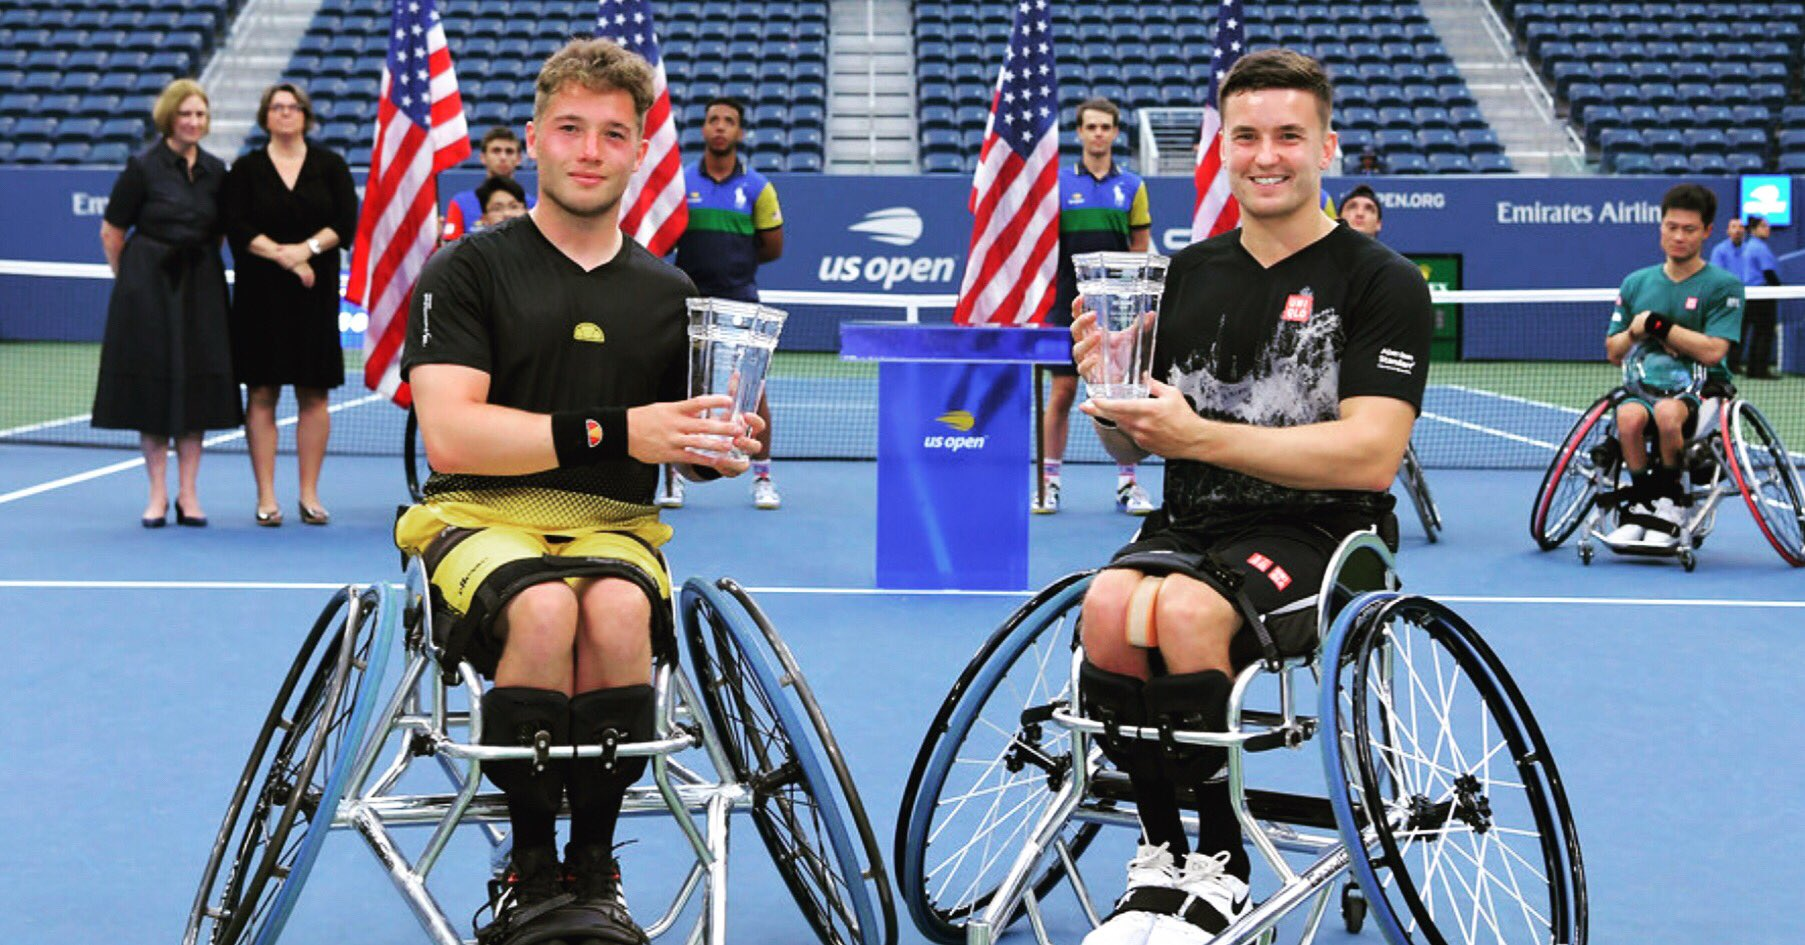 2017 🏆 2018 🏆 2019 🏆  3 @usopen doubles titles in a row with @alfiehewett6 . Thanks for the backing as always, onwards and upwards ✊🏼 https://t.co/wnX0kIKOTu